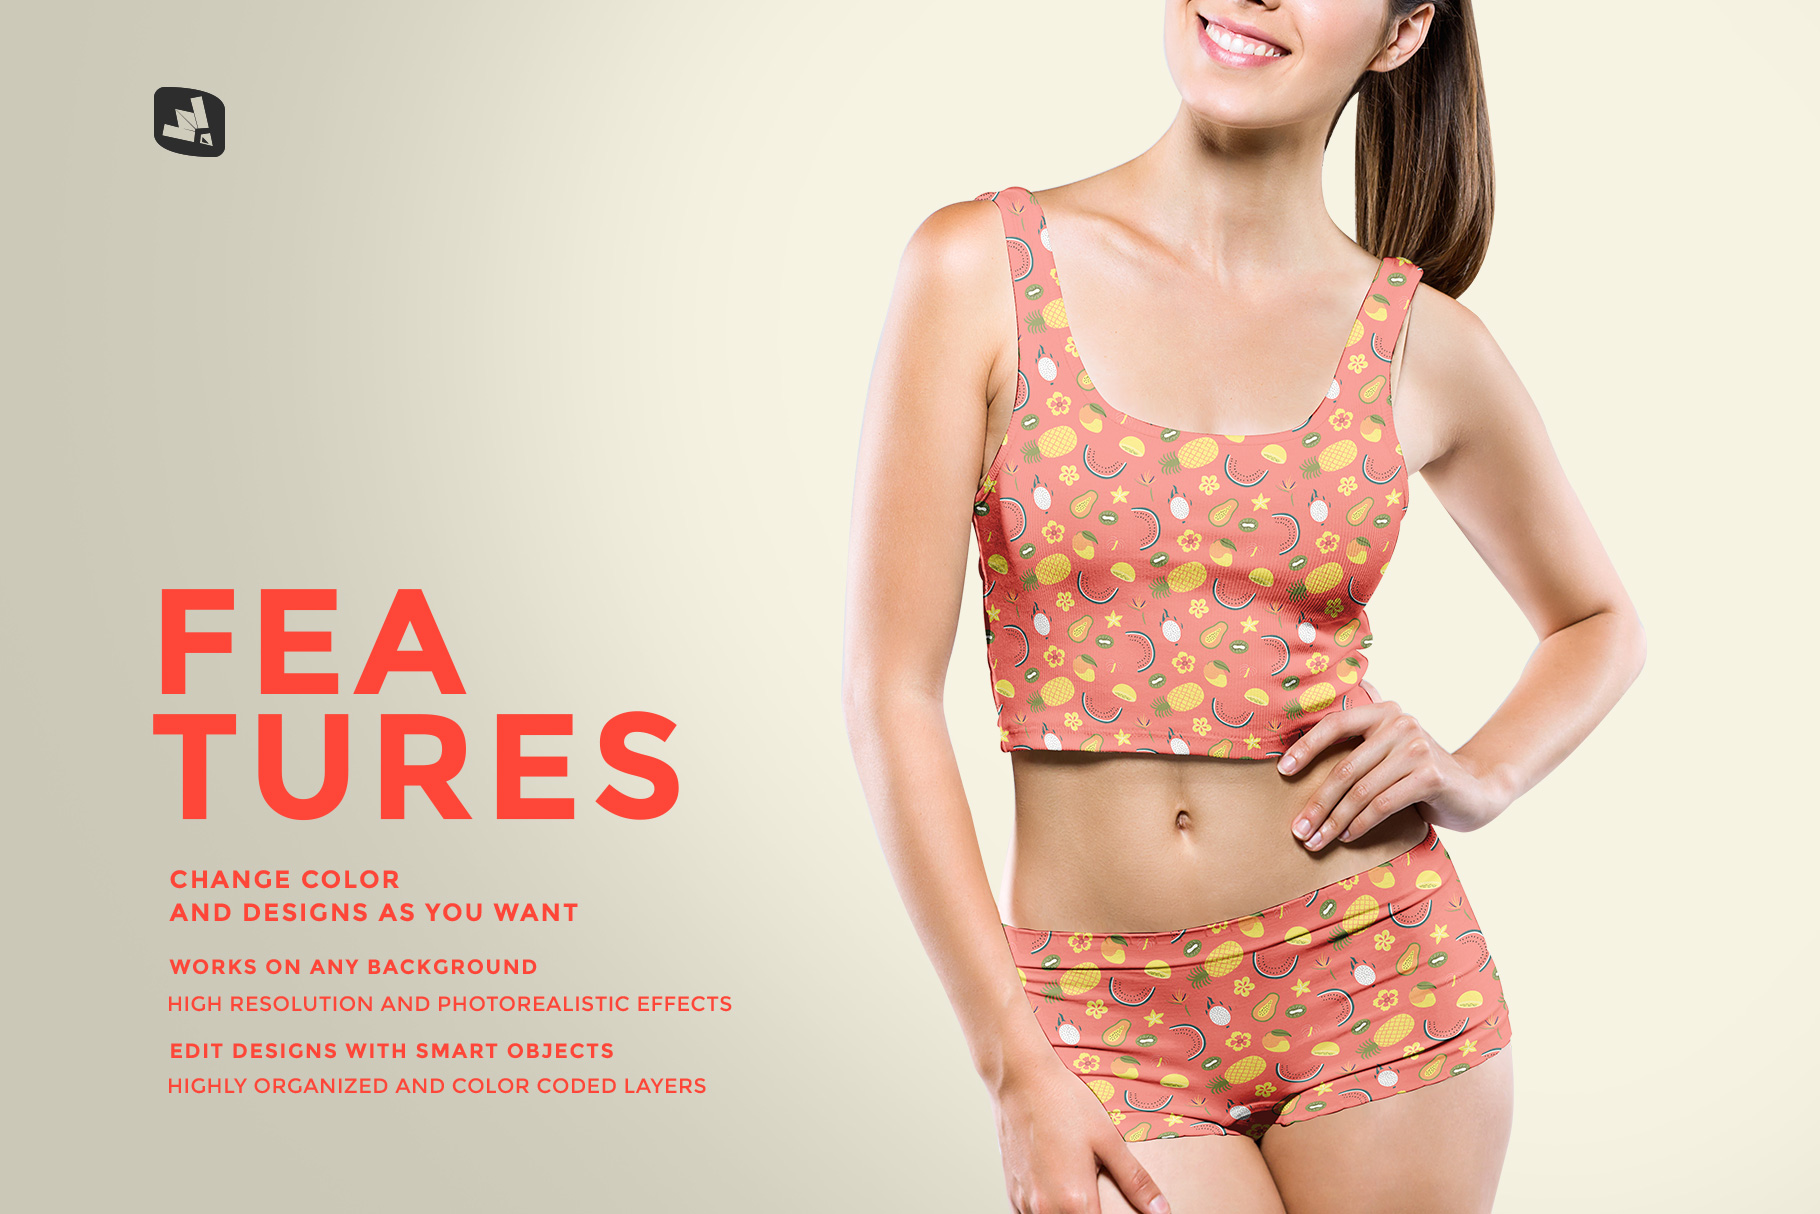 features of the female short workout outfit mockup